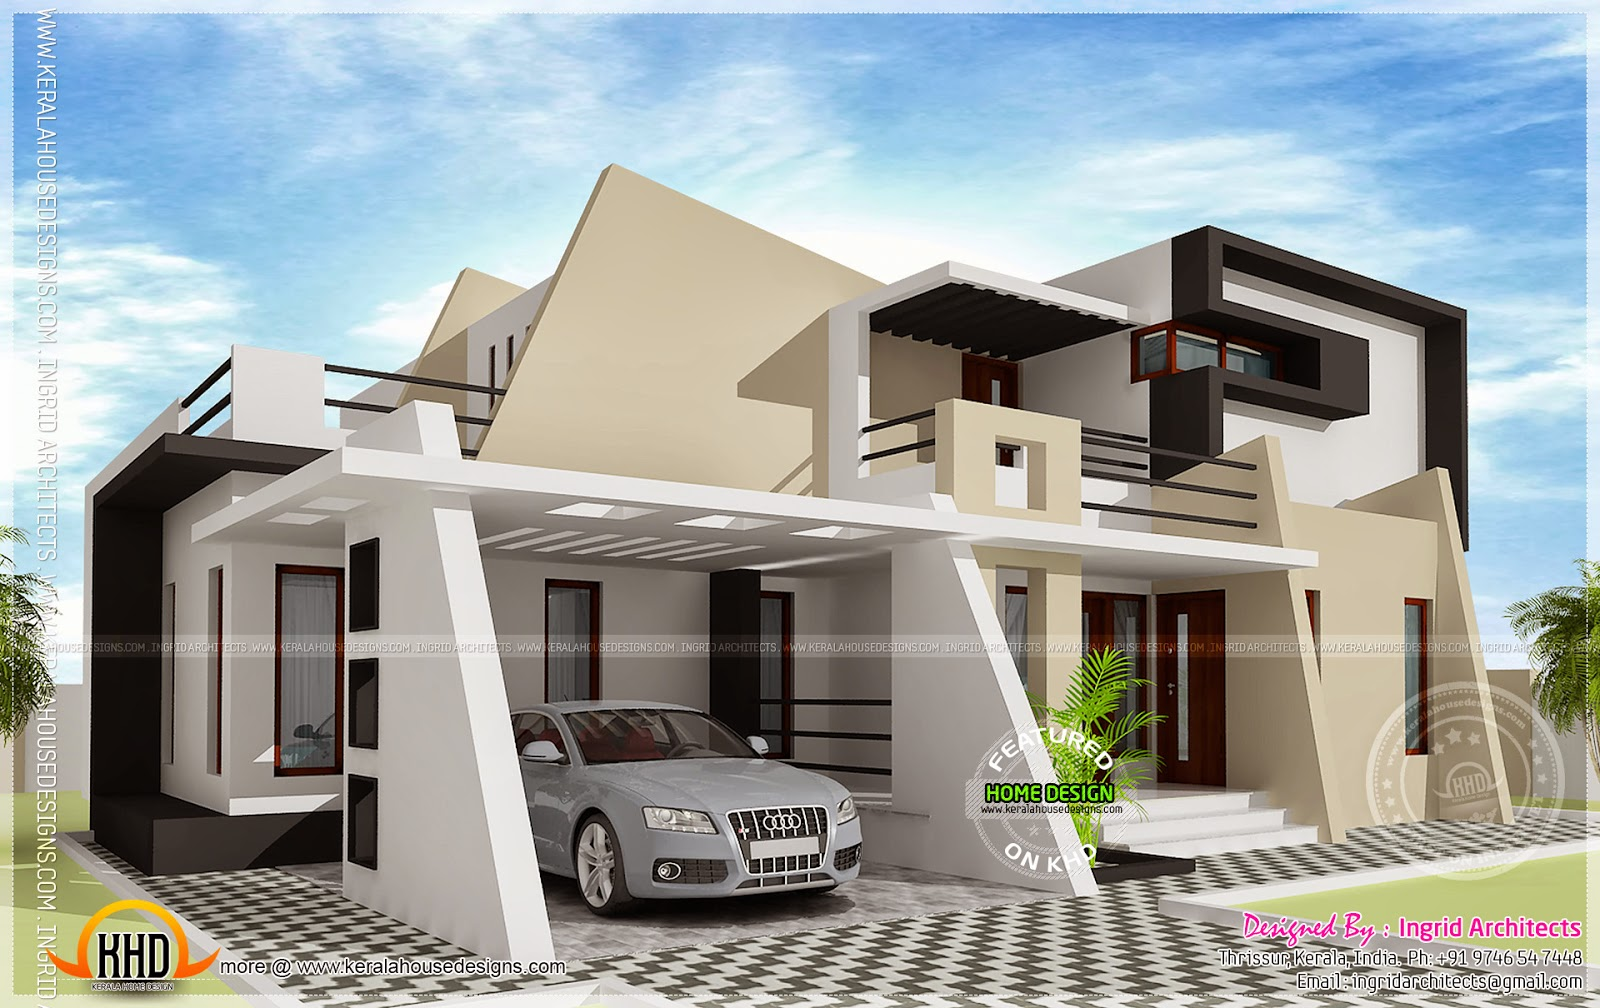 March 2014 - Kerala home design and floor plans